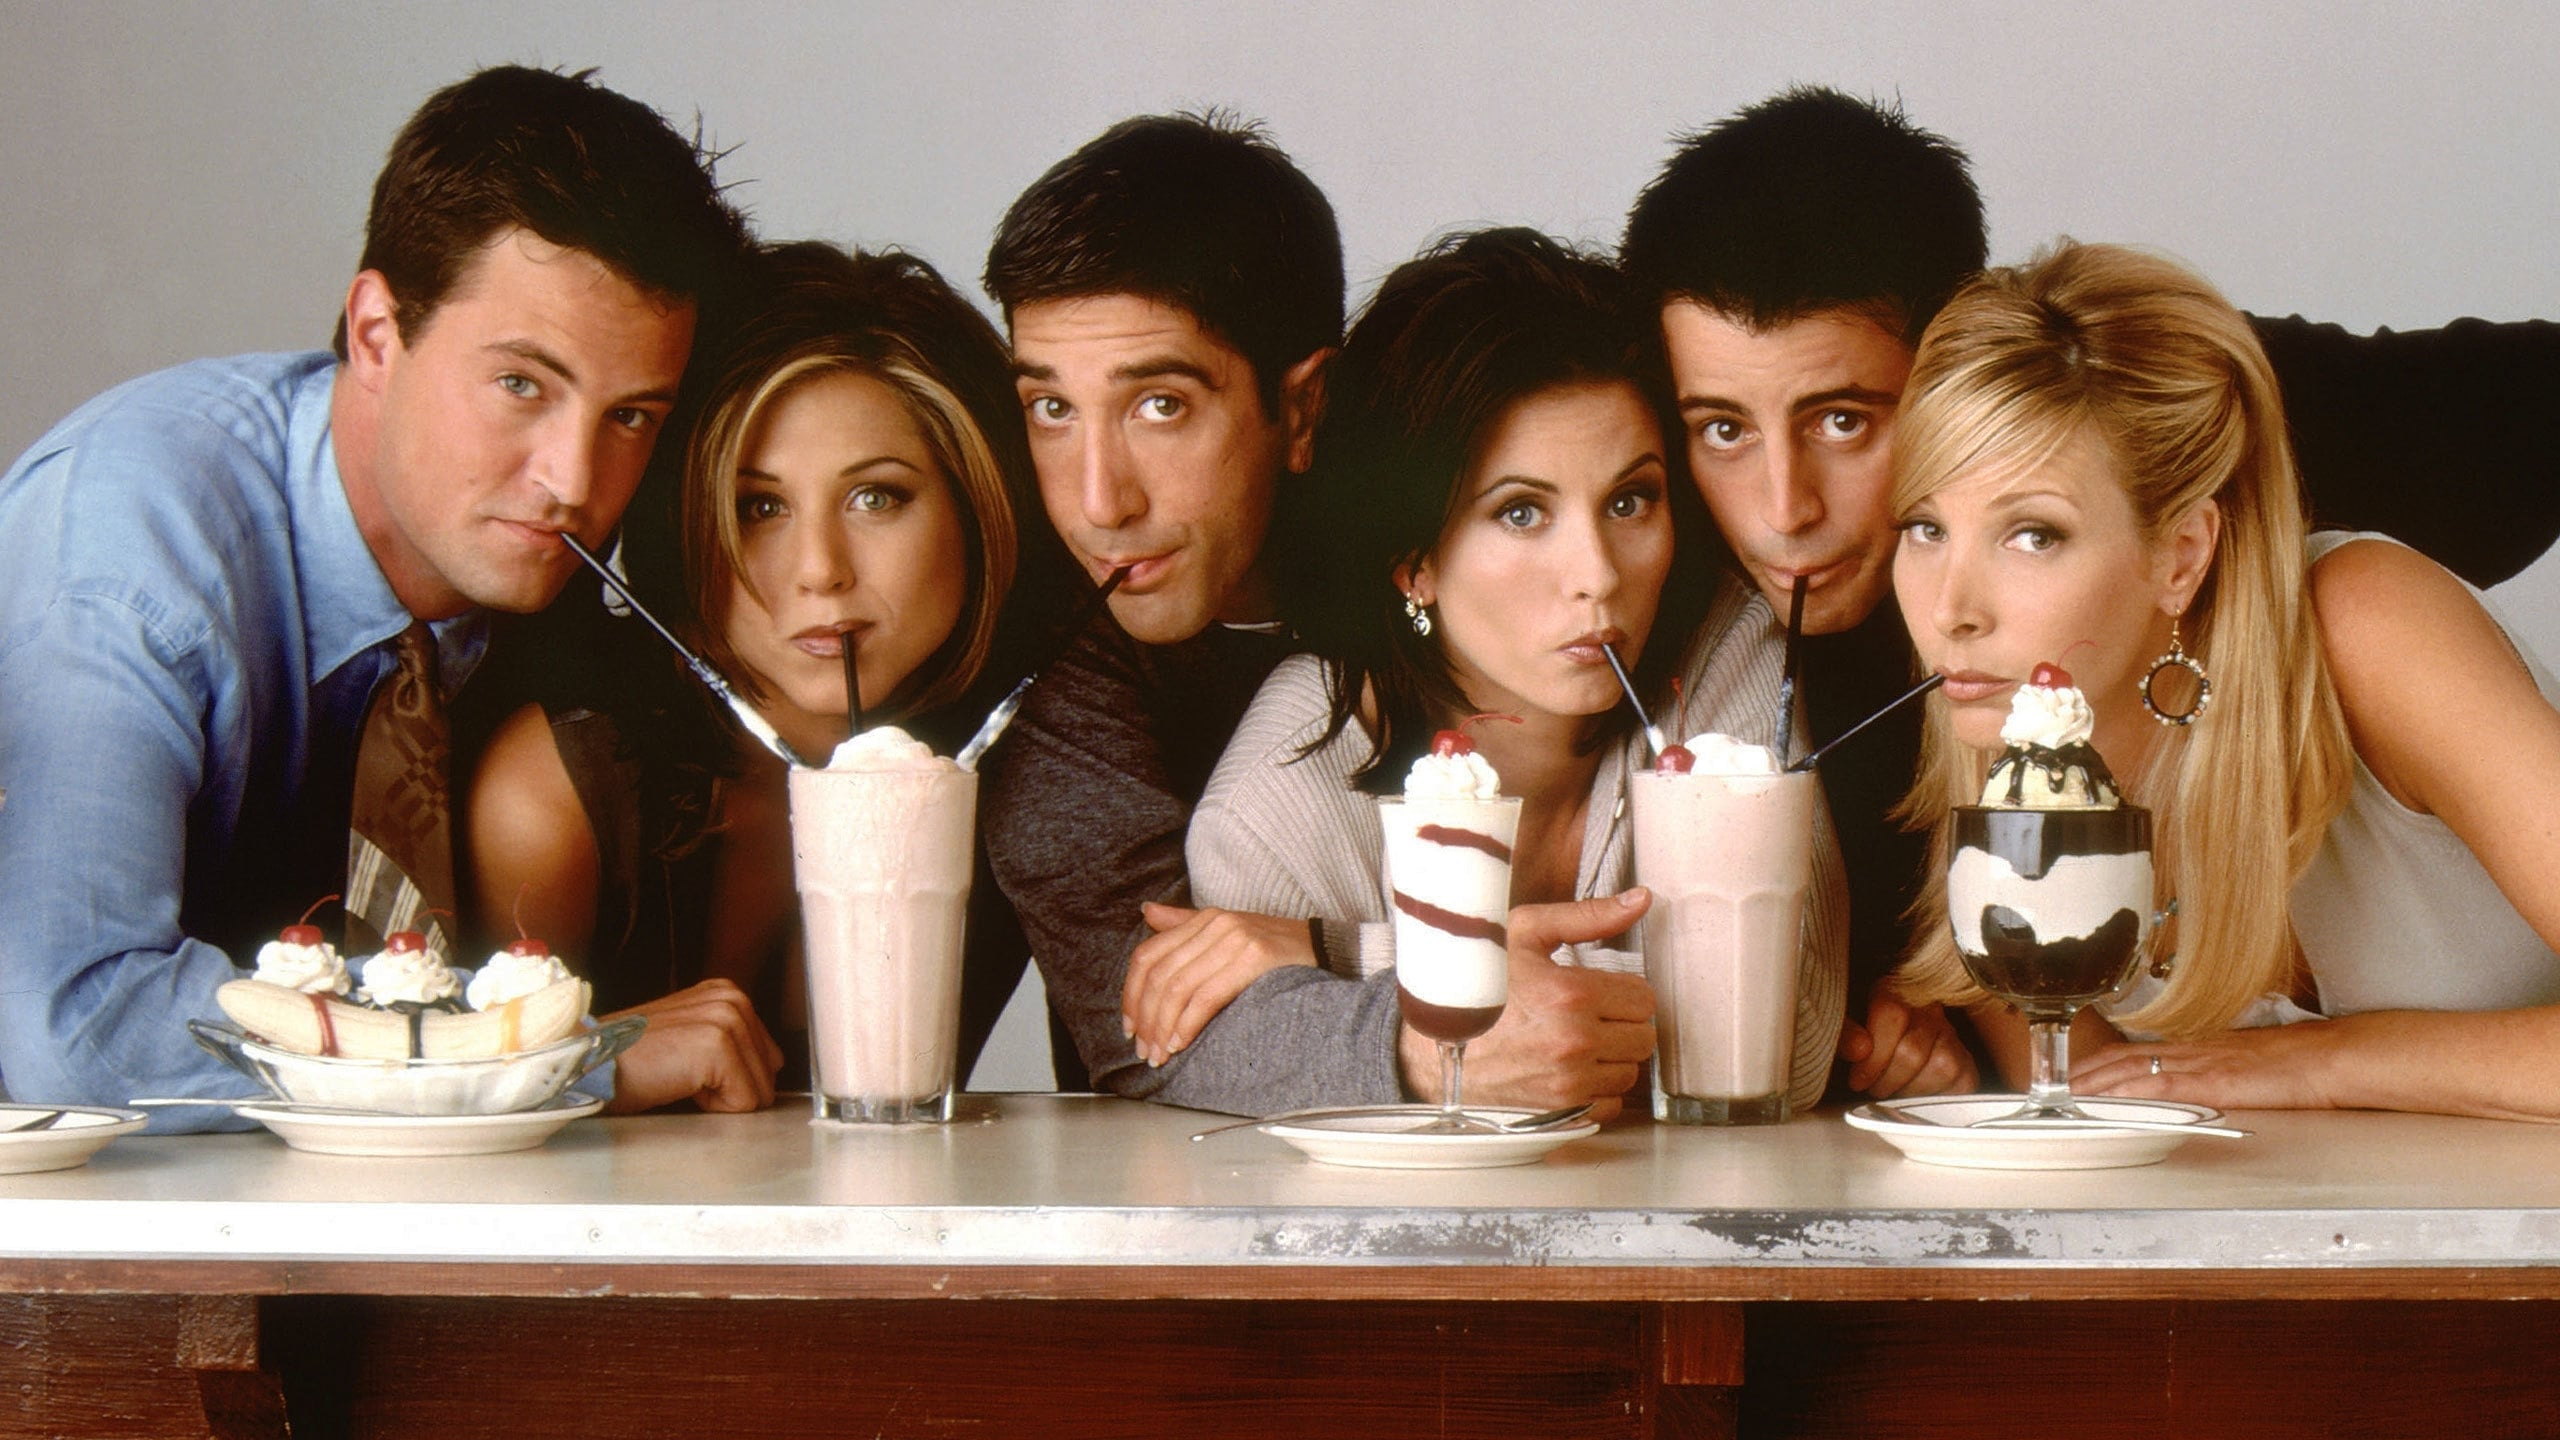 Friends - Season 10 Episode 12